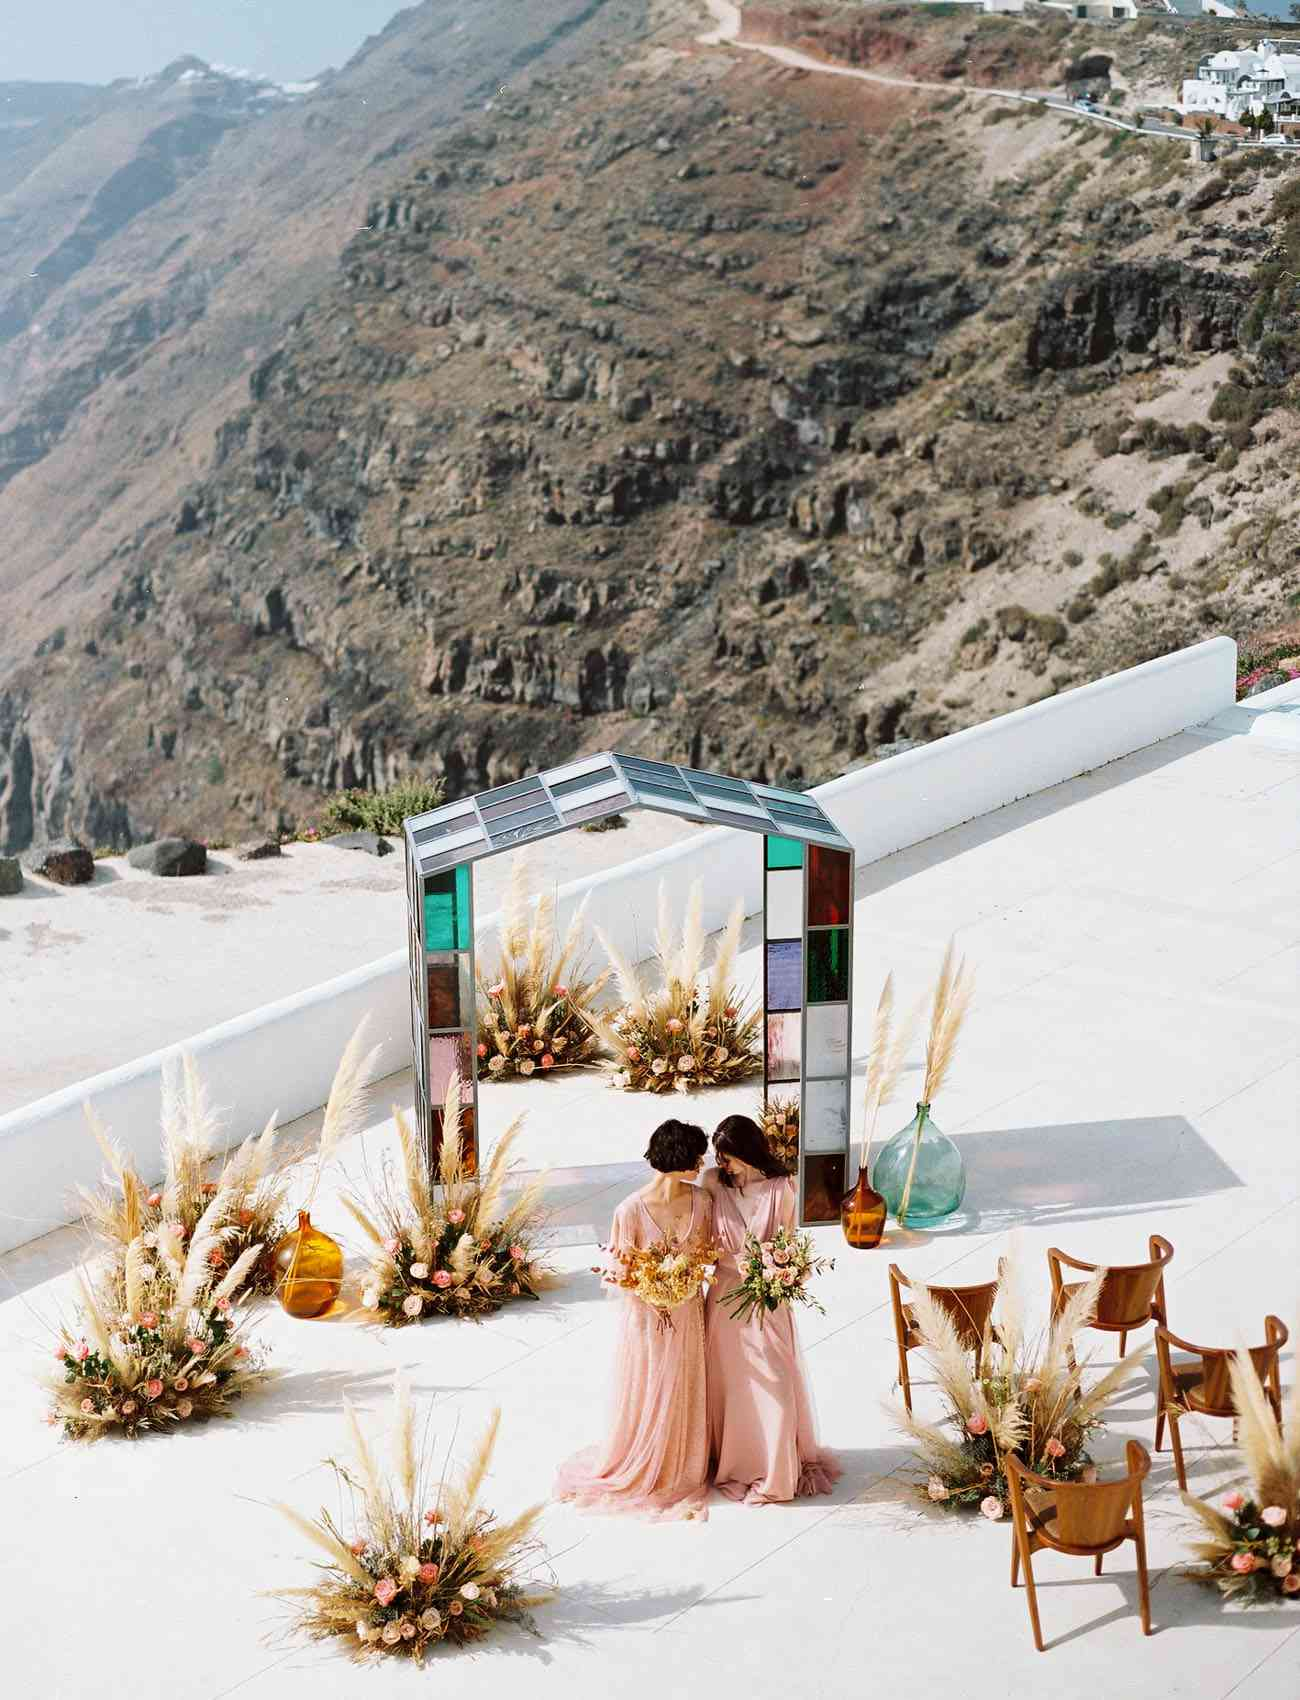 Wedding ceremony on a mountain